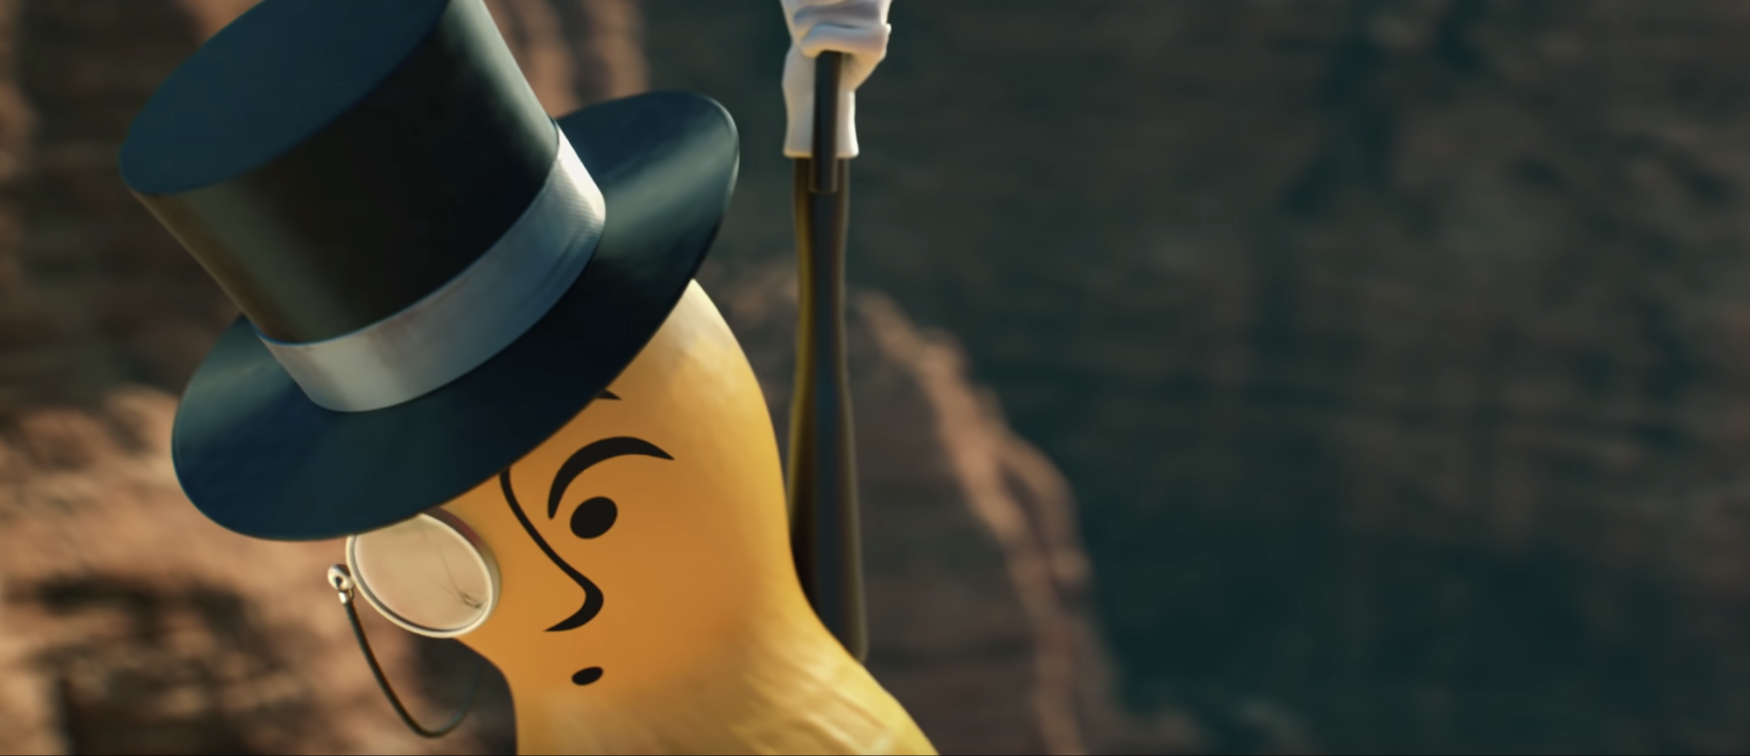 Planters Will Not Be Showing The Commercial Of Mr. Peanut's Death In Wake Of Kobe Bryant's Passing